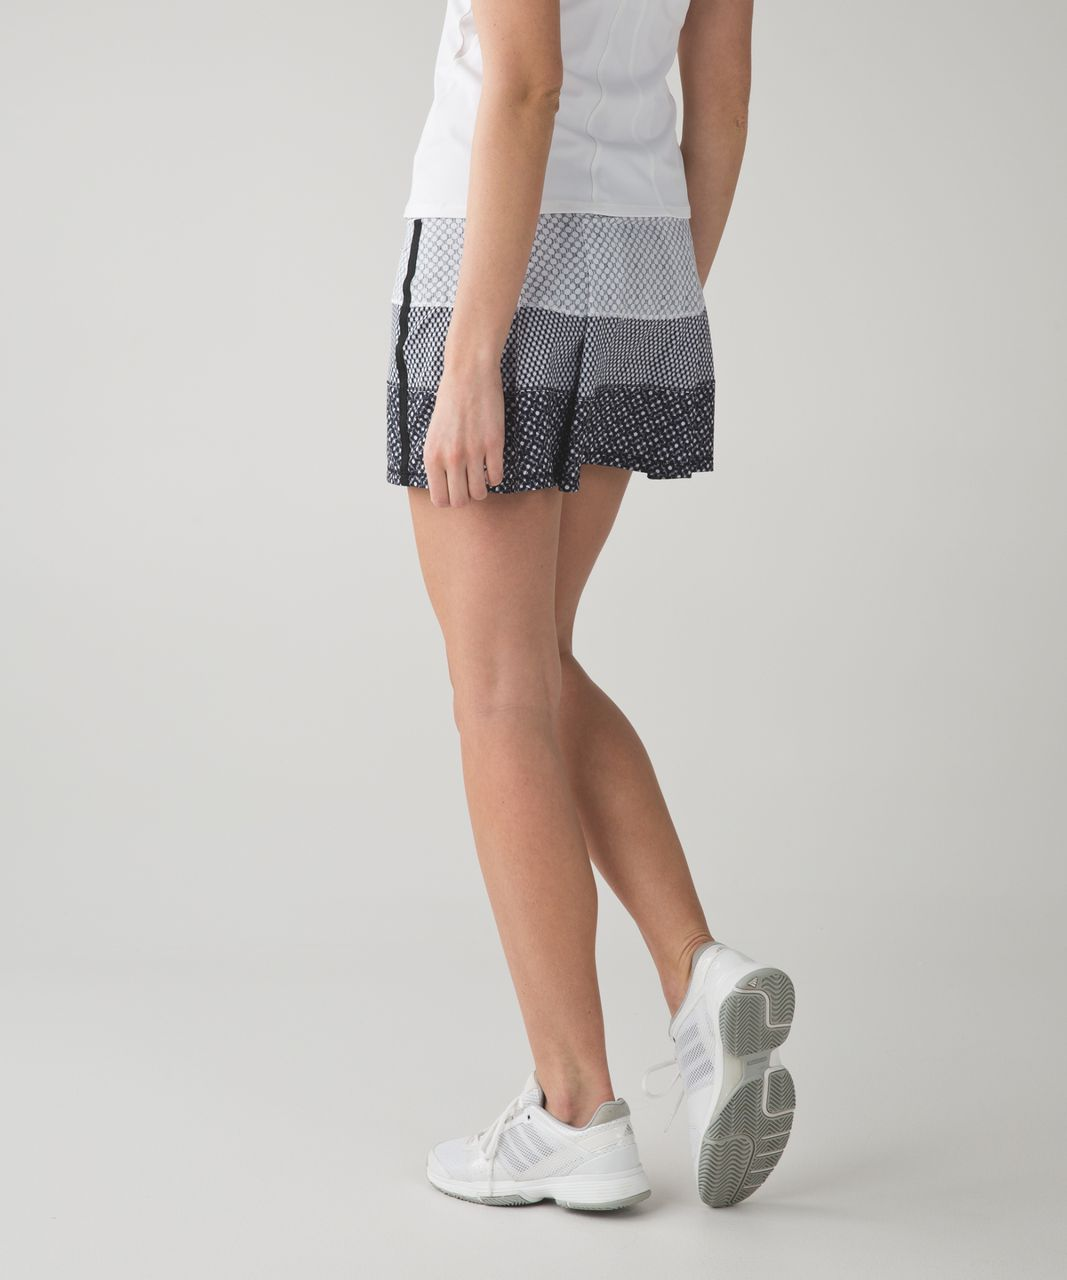 Lululemon Pace Rival Skirt II (Tall) *4-way Stretch - Dottie Eyelet White Black / Mish Mesh White Black / Millie Mesh White Black